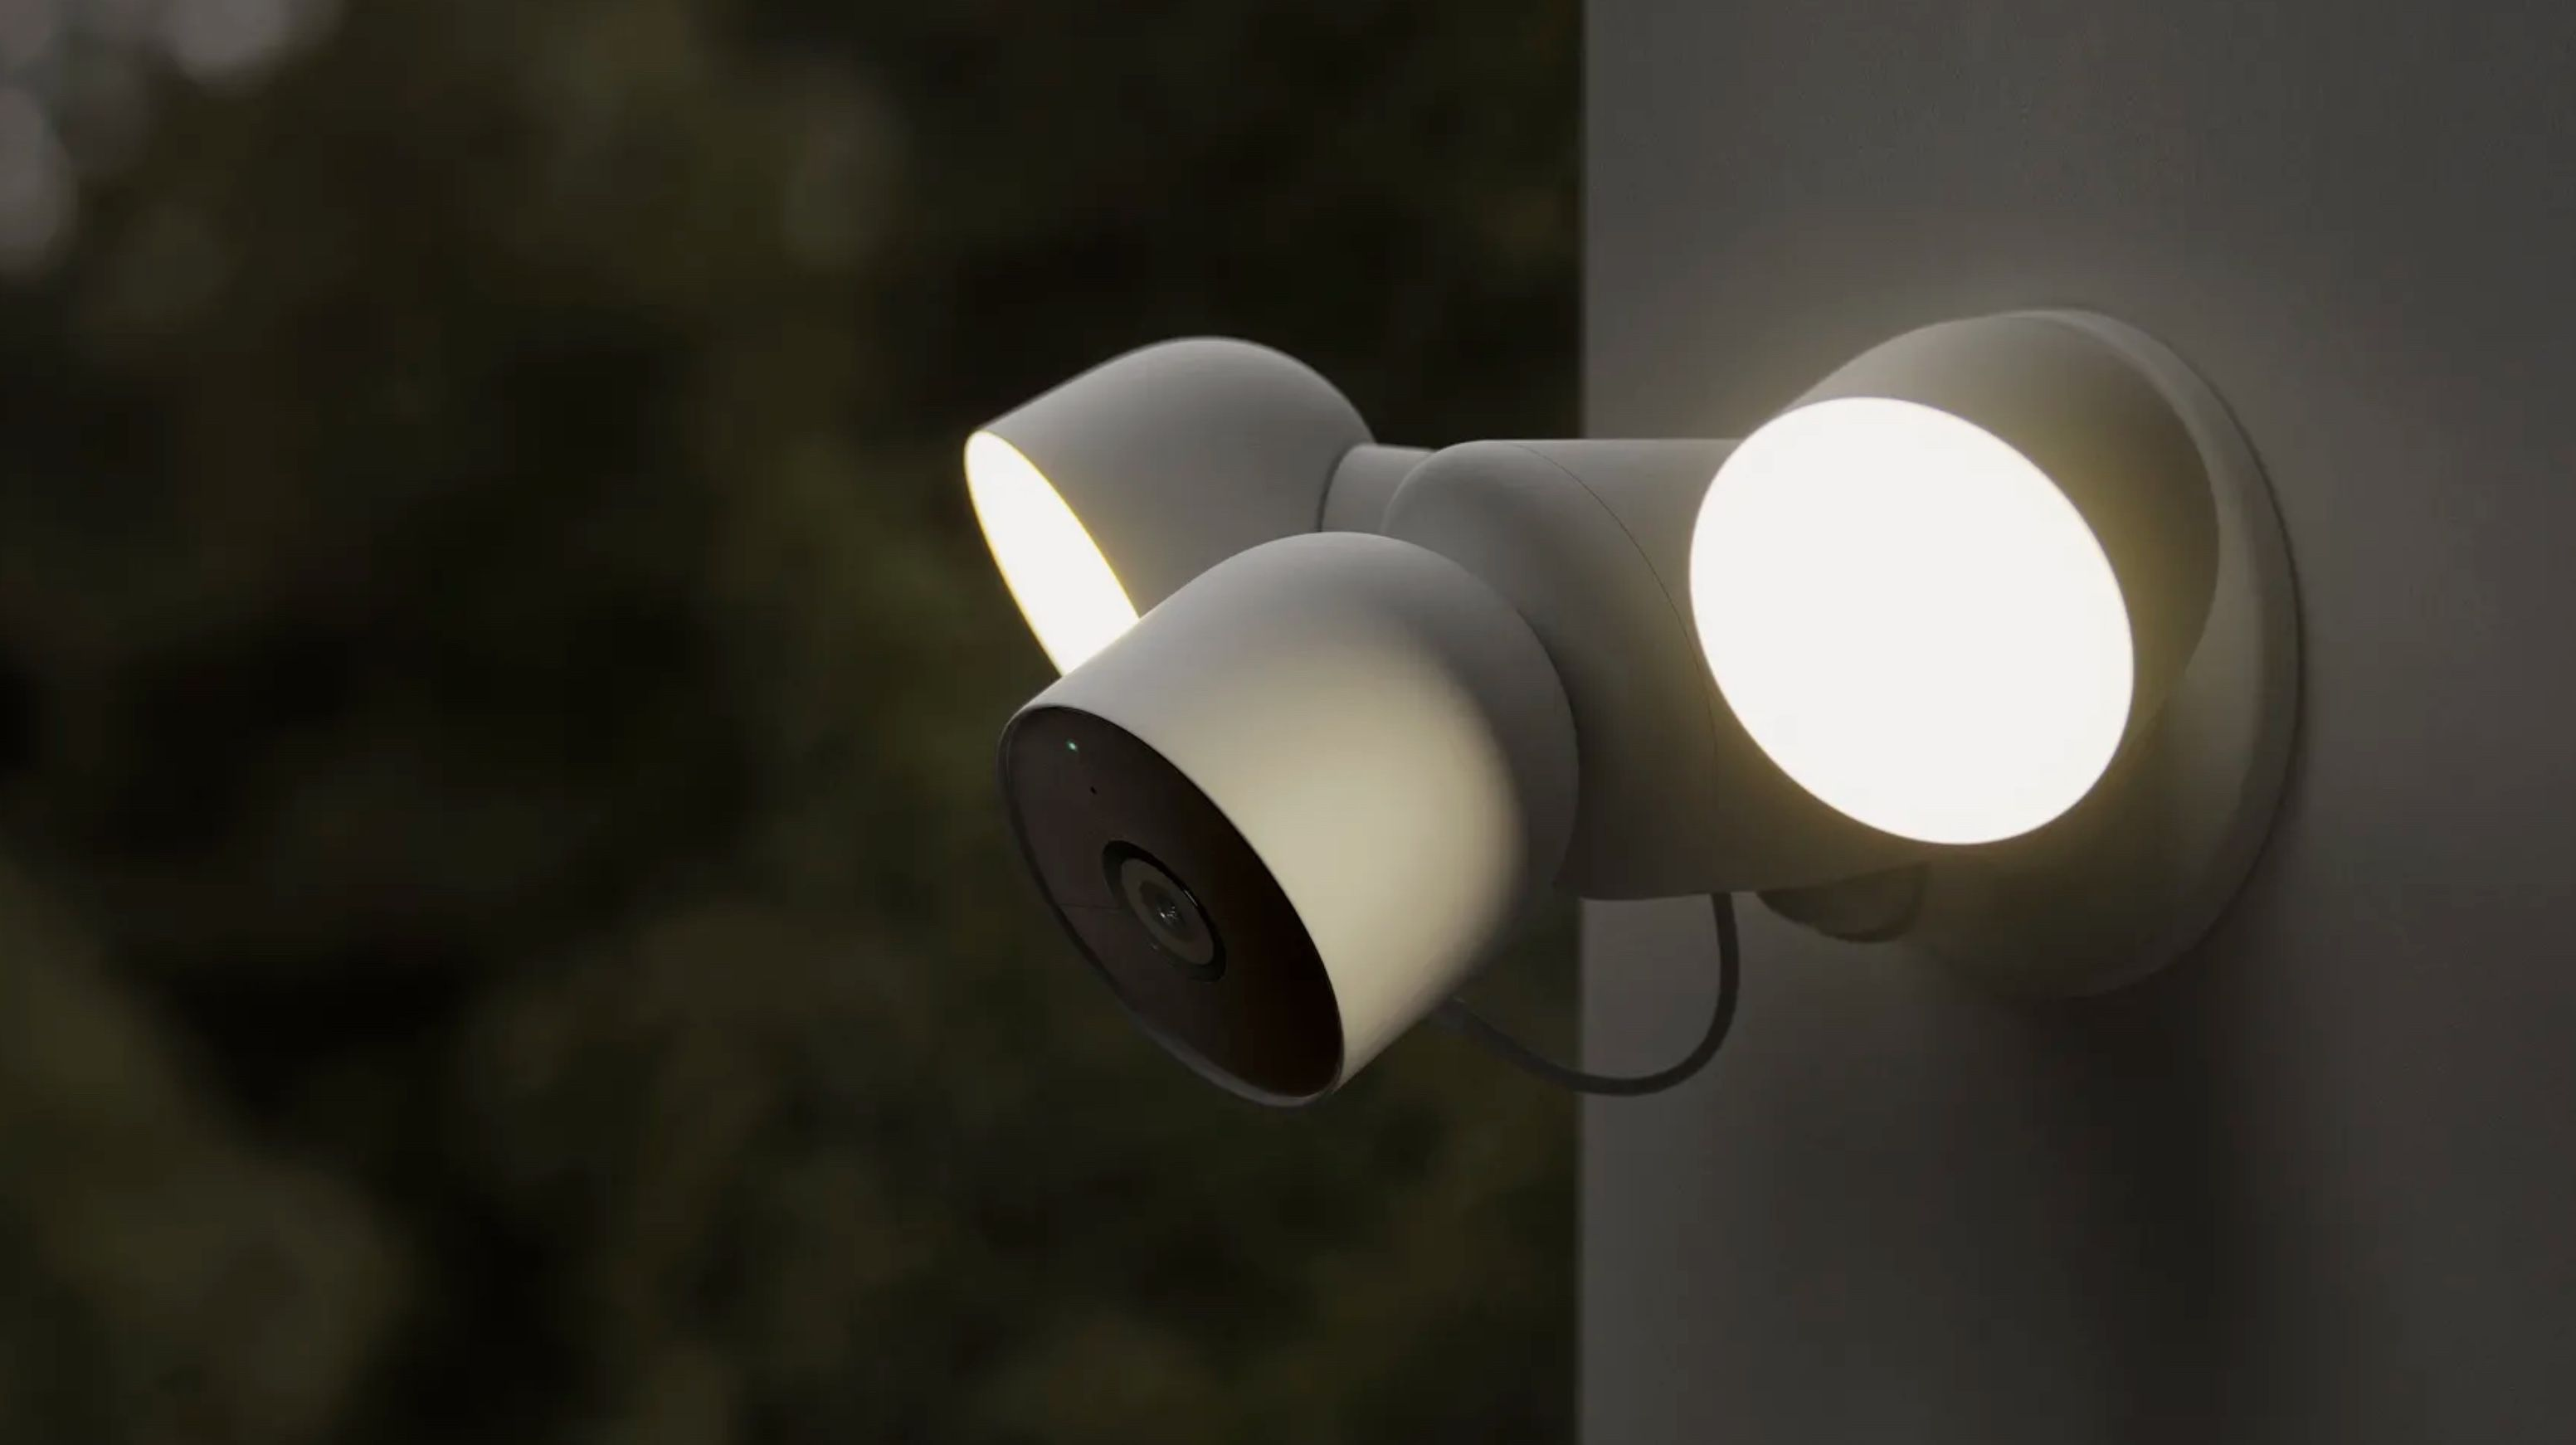 The outdoor Nest spotlight camera, with wired power connection.